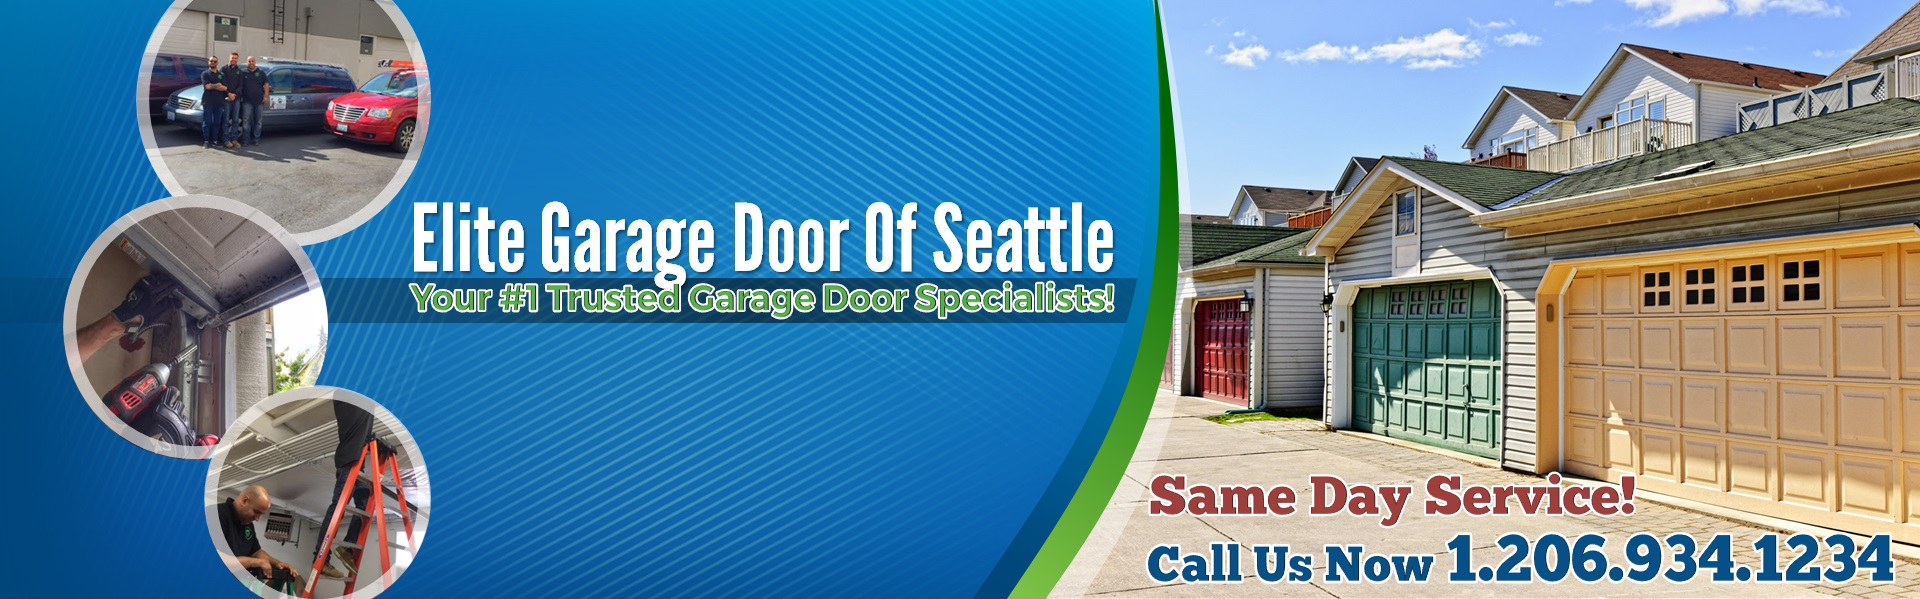 Garage Door Questions & Answers • Elite Tech Services, LLC